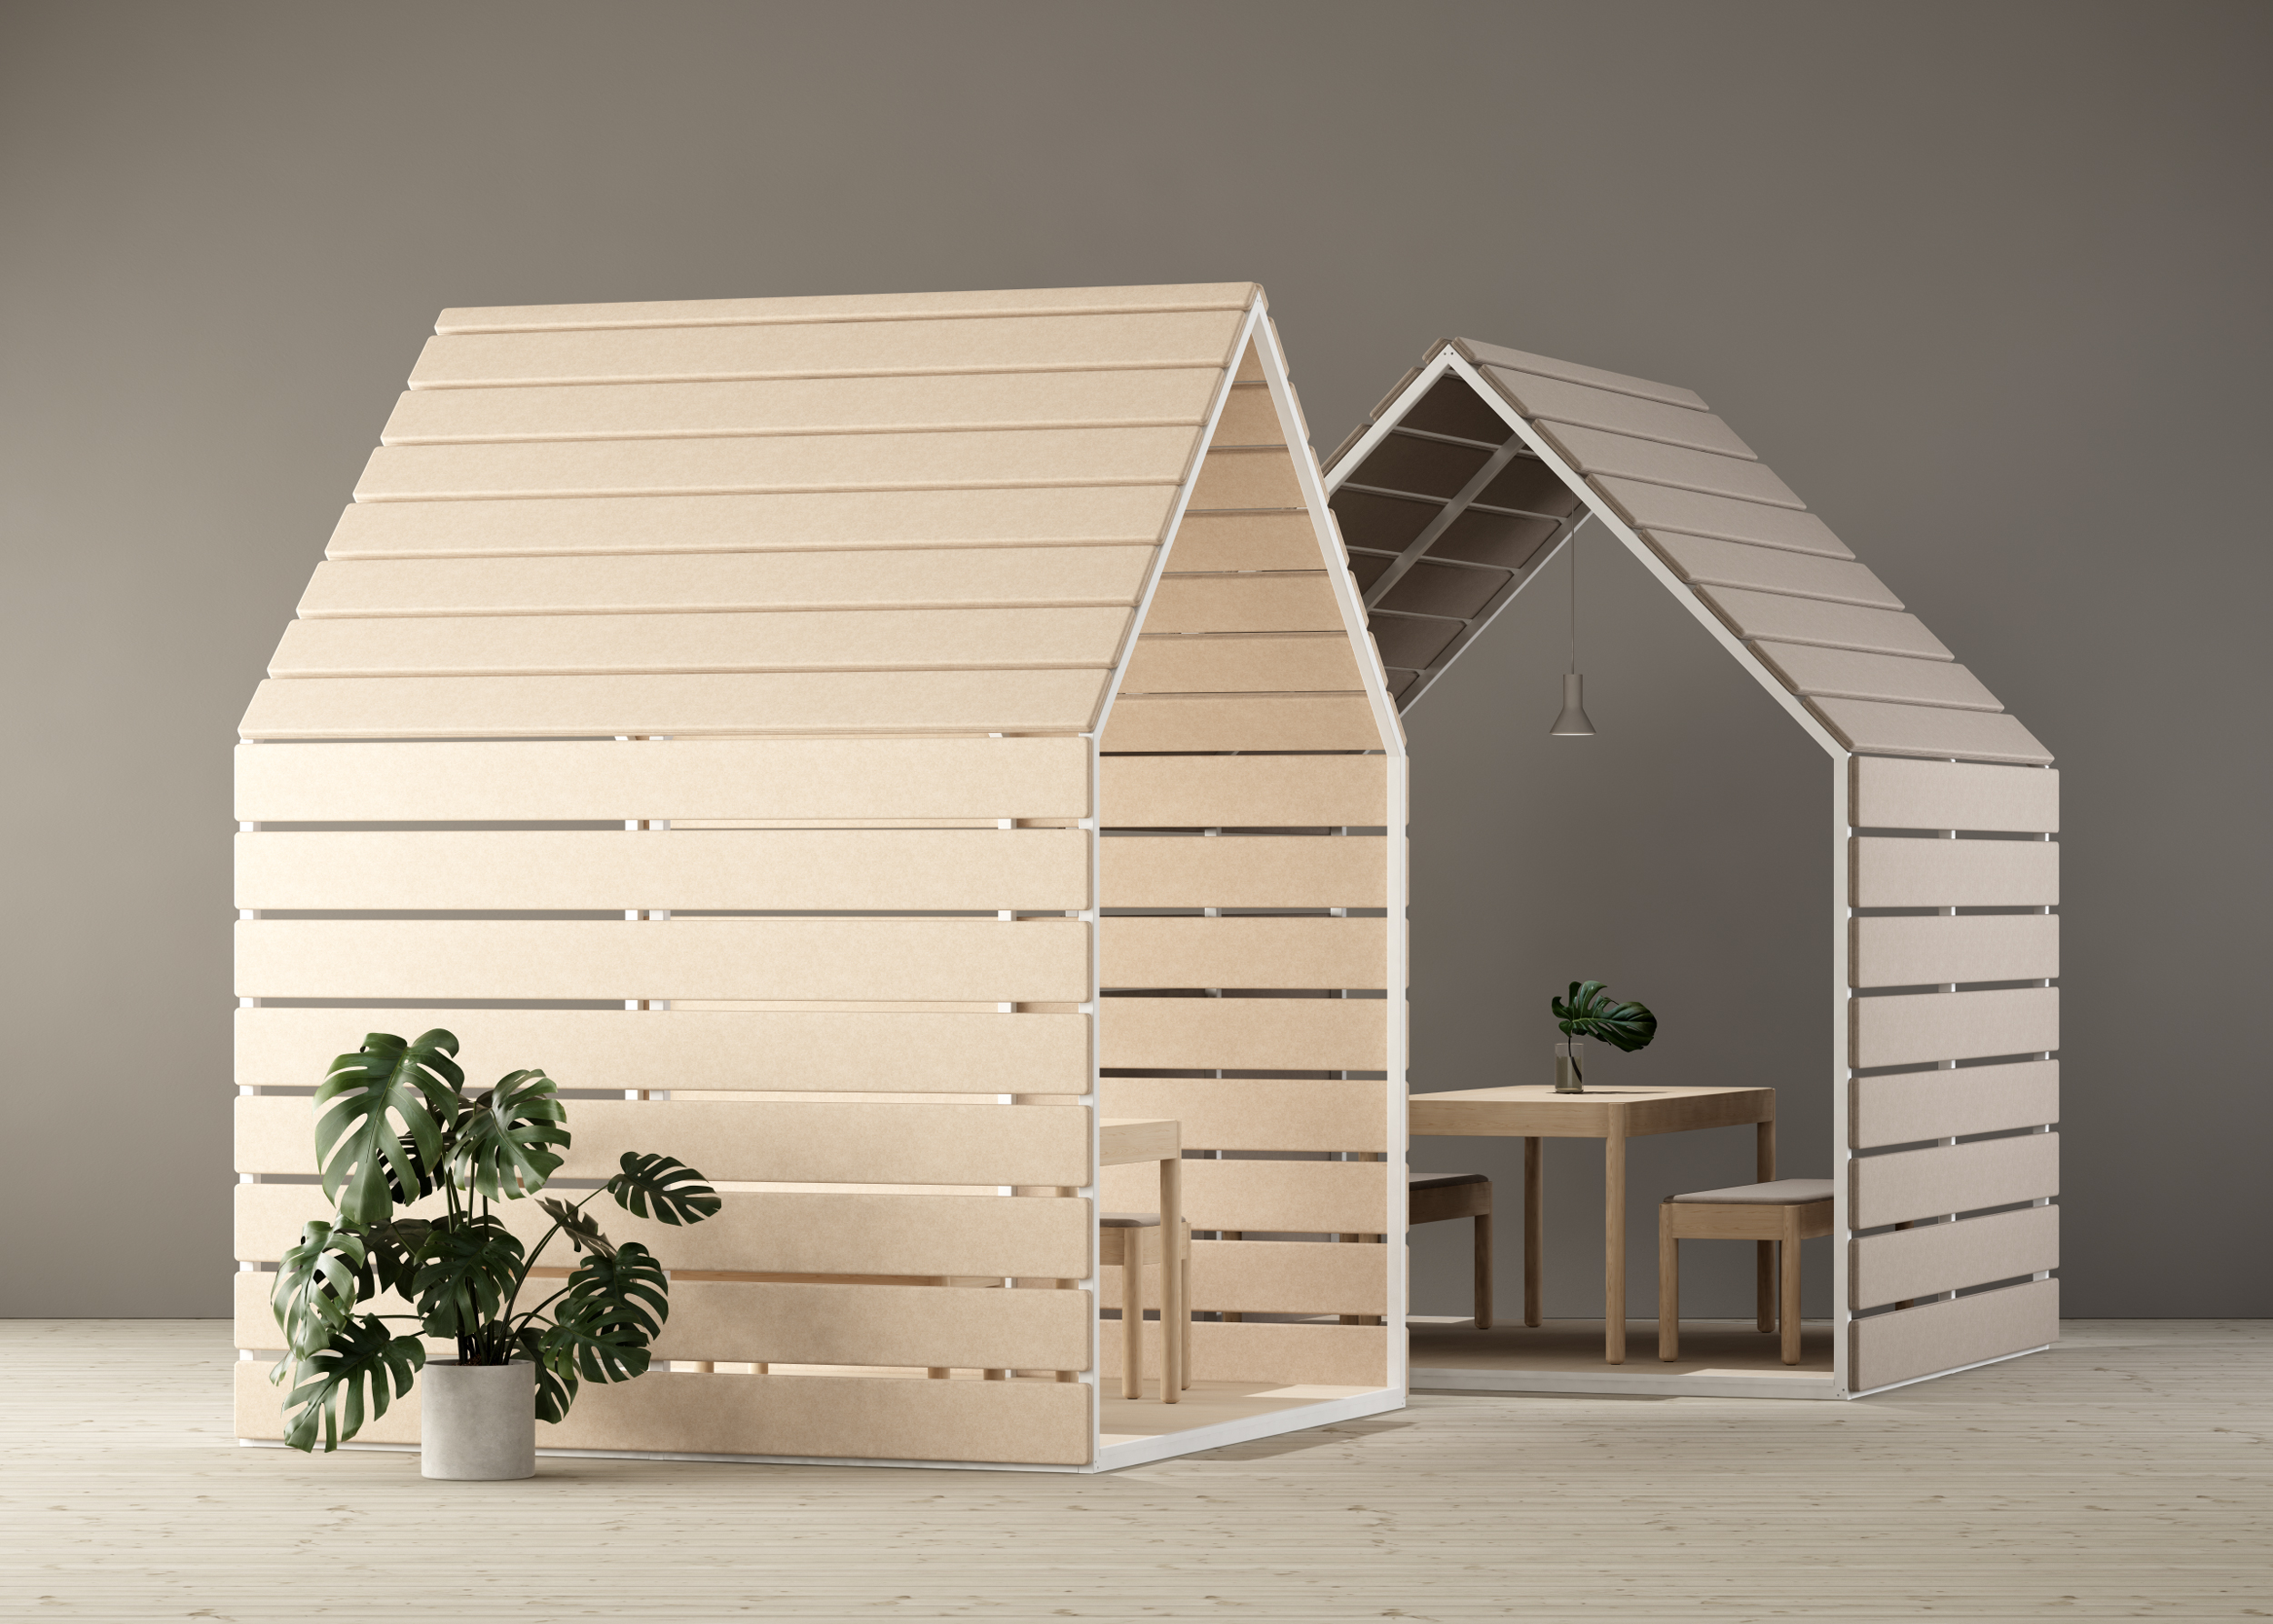 LimbusBarn By Glimakra of Sweden - Design Johan Kauppi